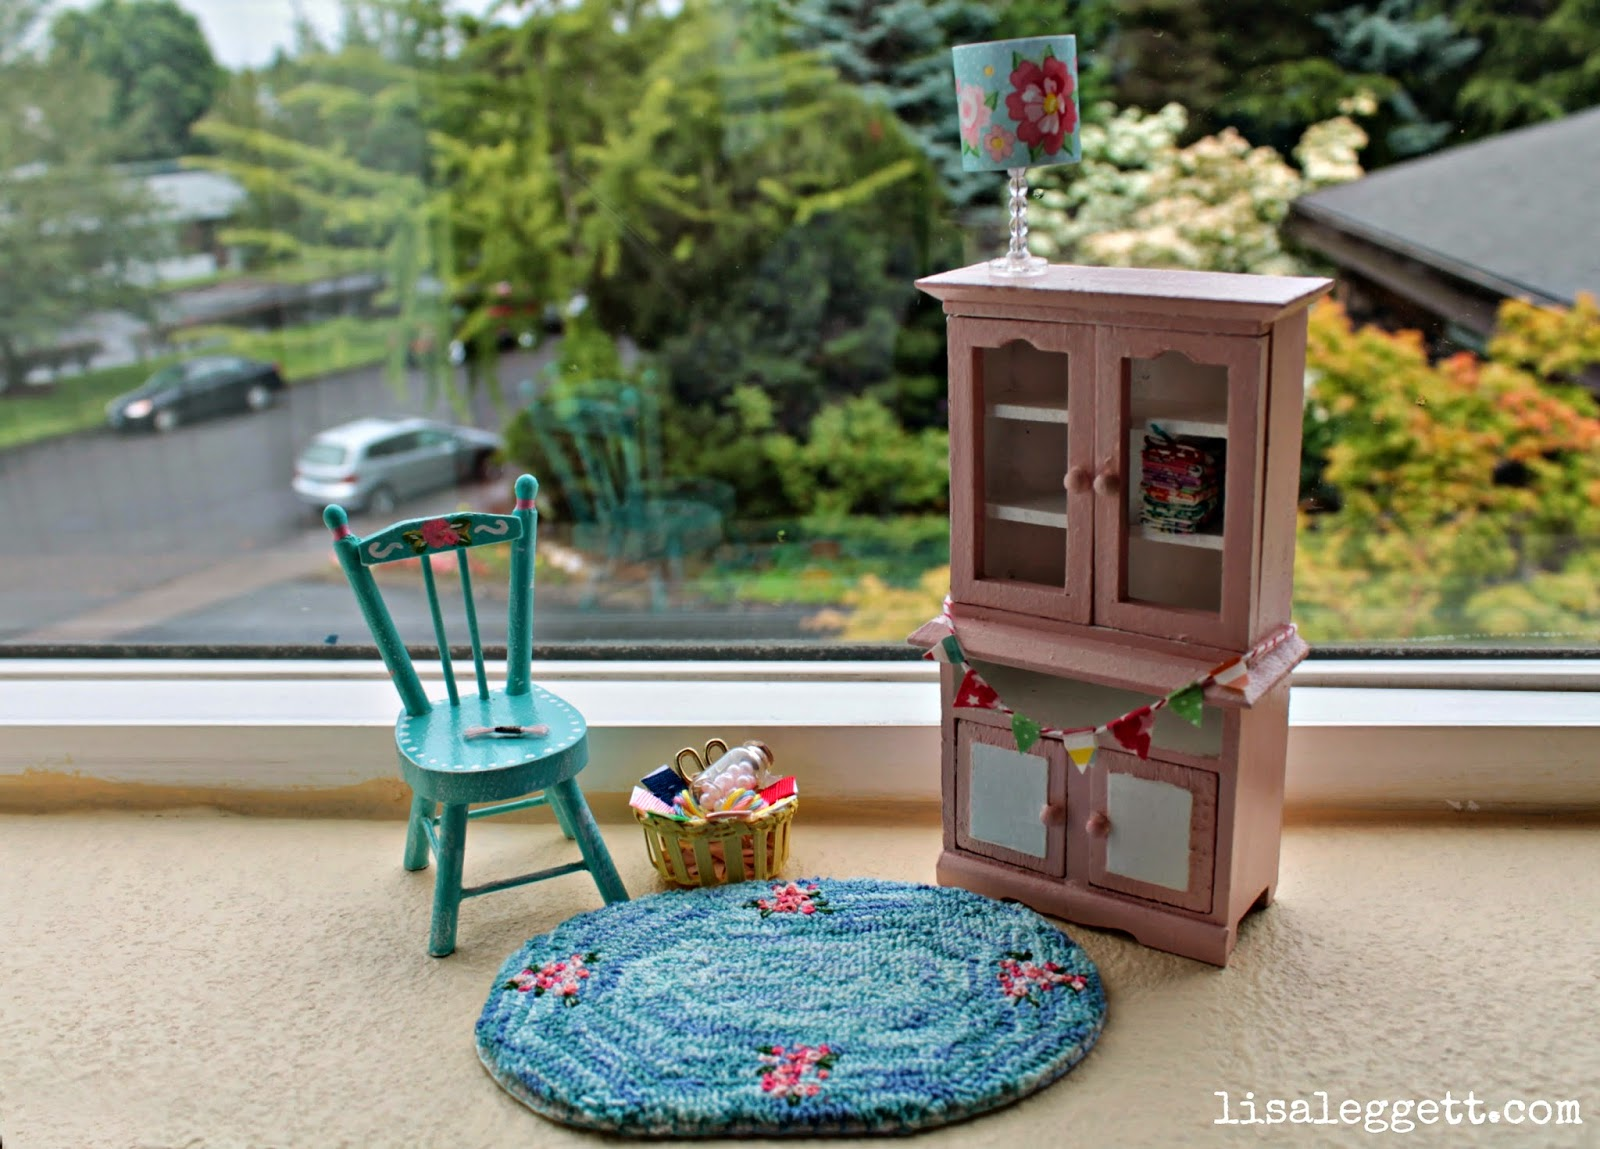 Mini Craft Room Things by Lisa Leggett